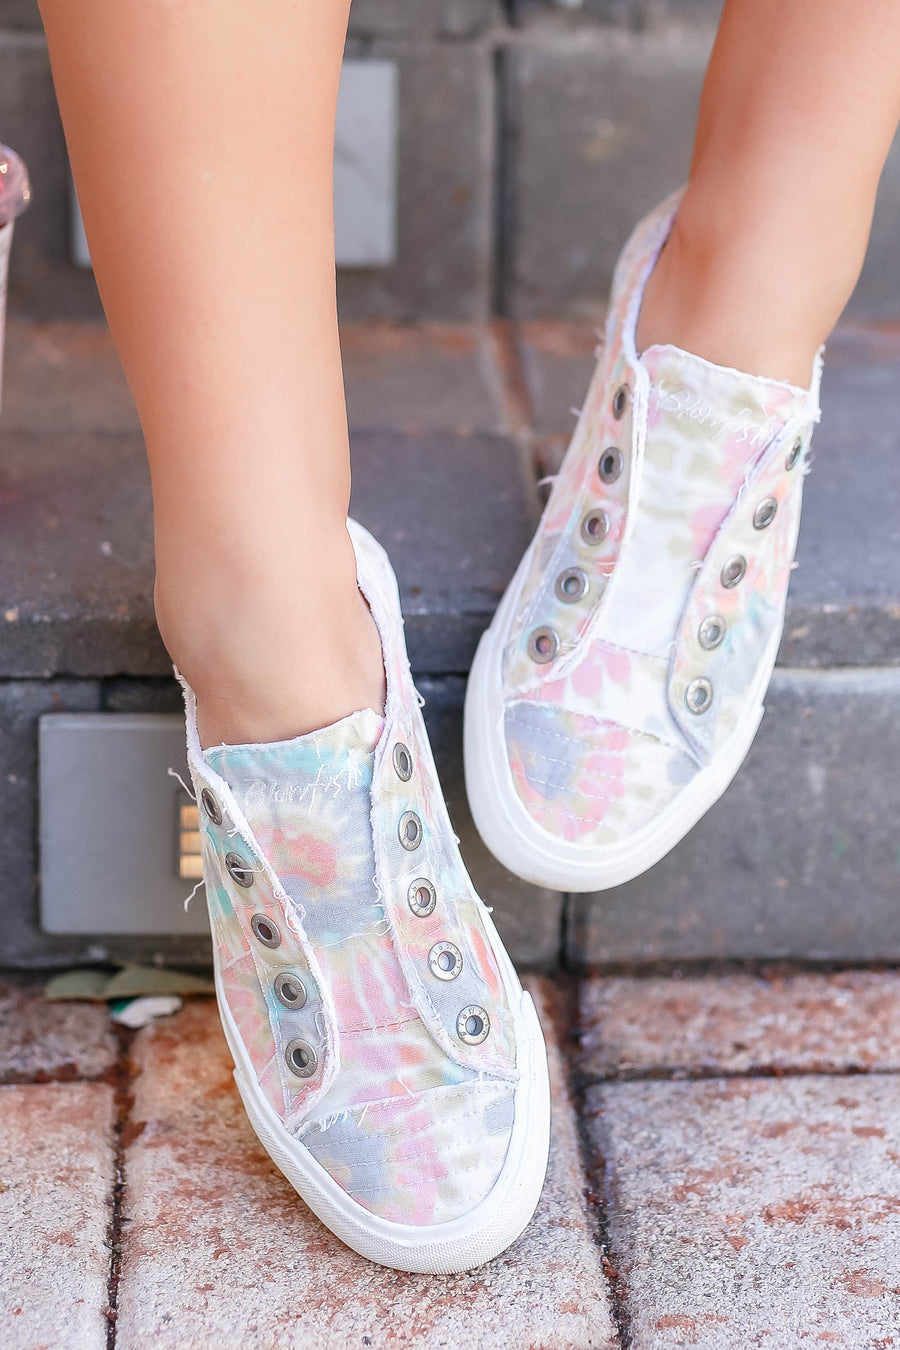 Wherever You Wander Tie Dye Sneakers - Multi closet candy women's trendy colorful slip on sneakers 1